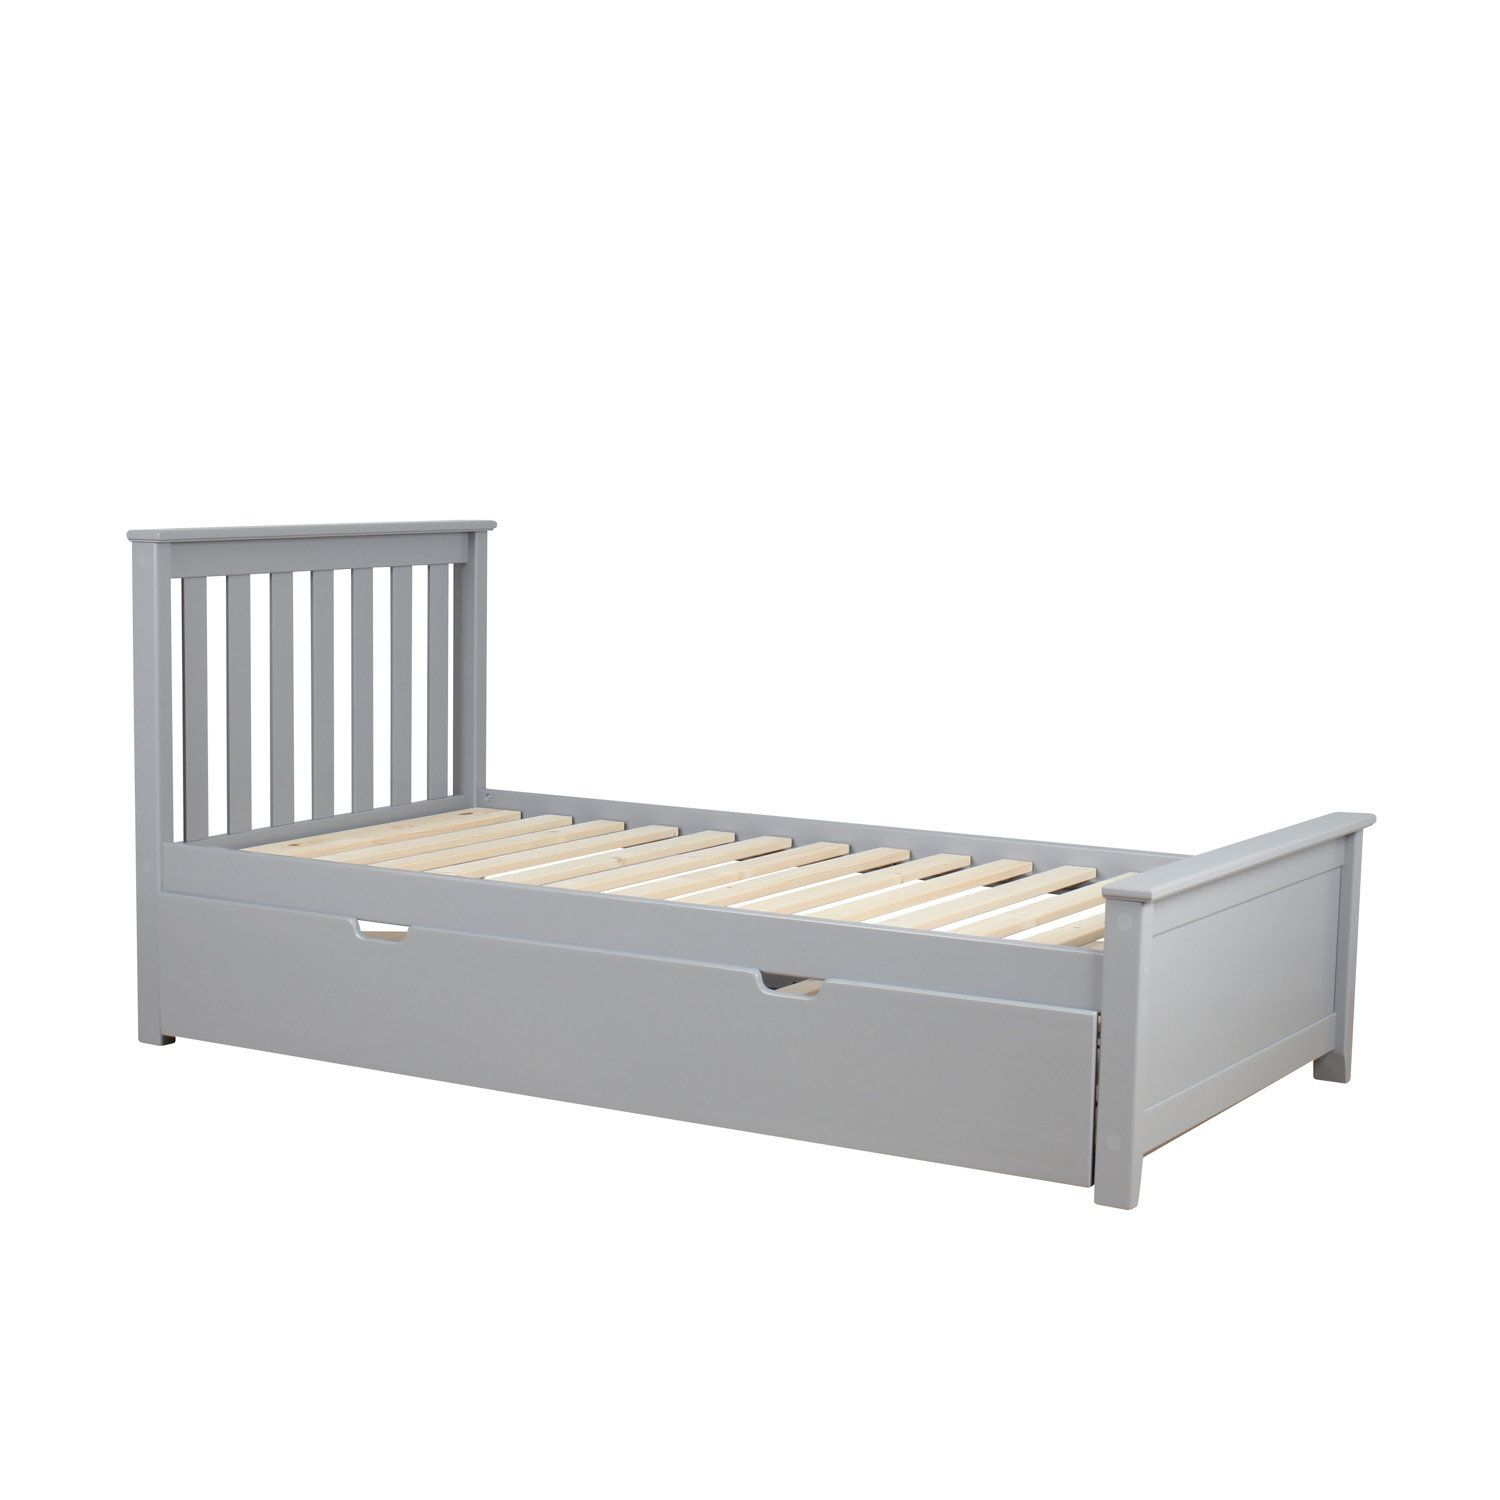 solid wood twin platform bed with trundle frame  products  - solid wood twin platform bed with trundle frame